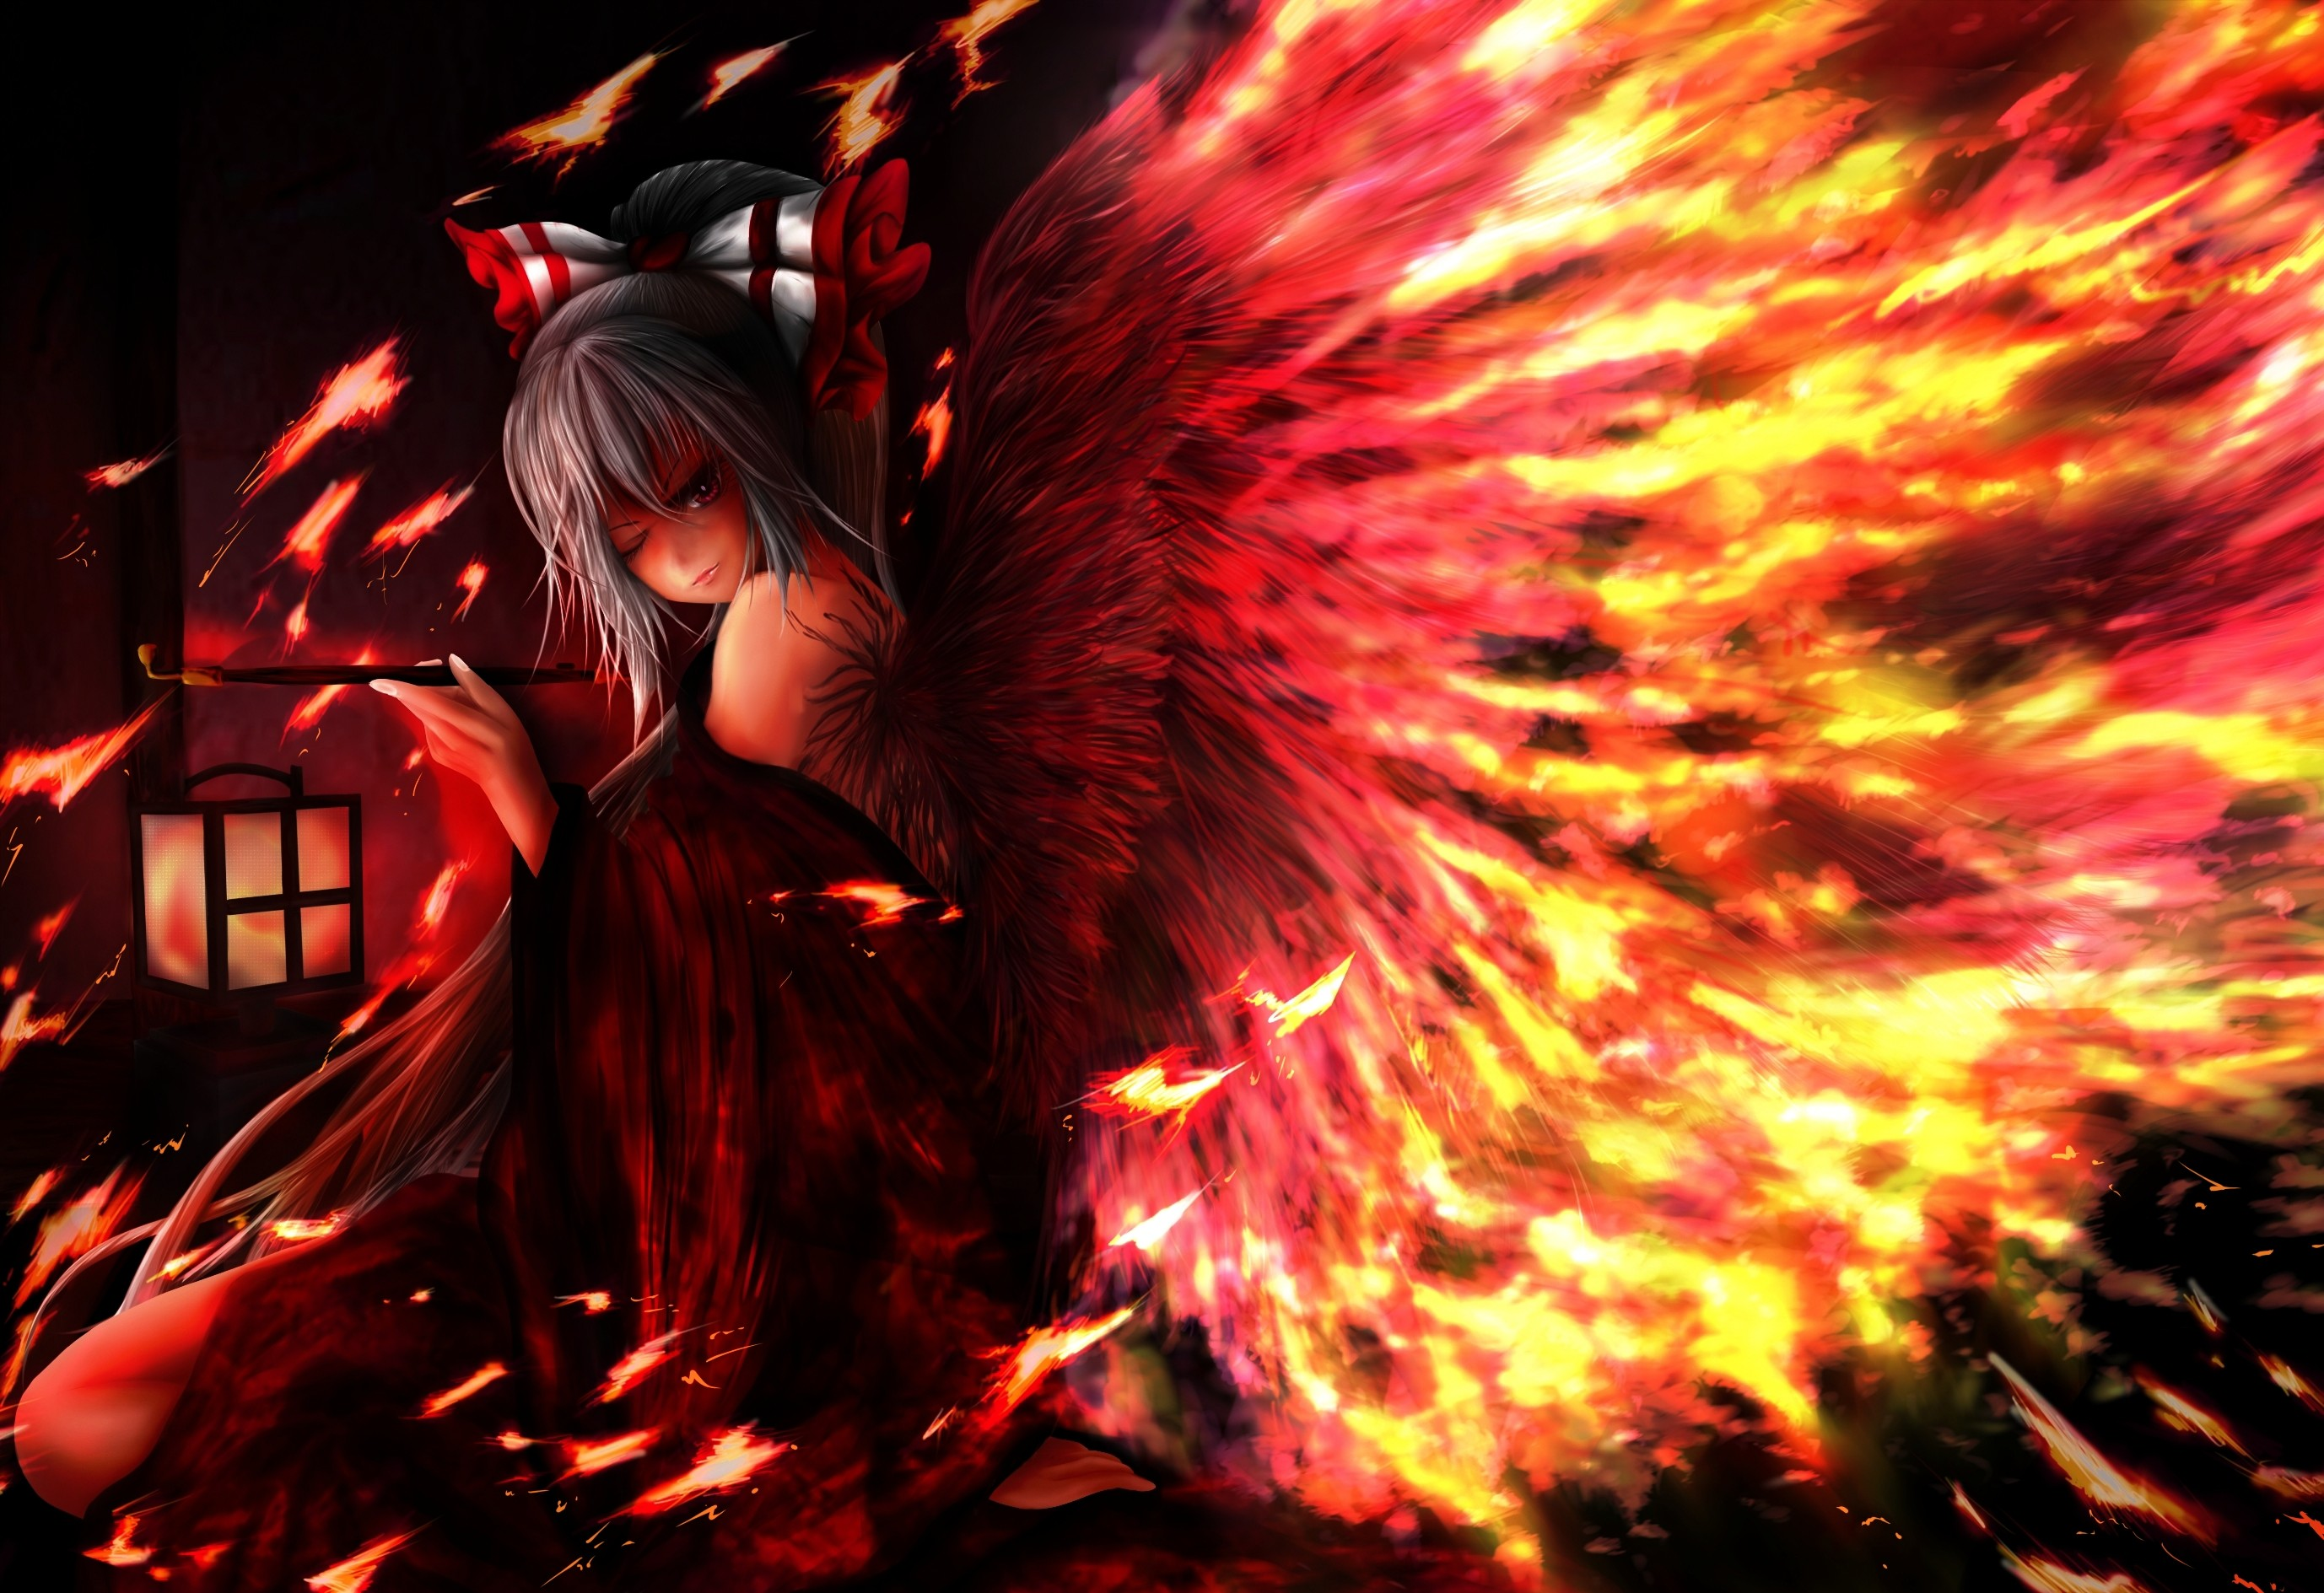 2755x1889 Touhou fantasy vector art angels fire wings girl gothic dark horror  wallpaper |  | 31434 | WallpaperUP